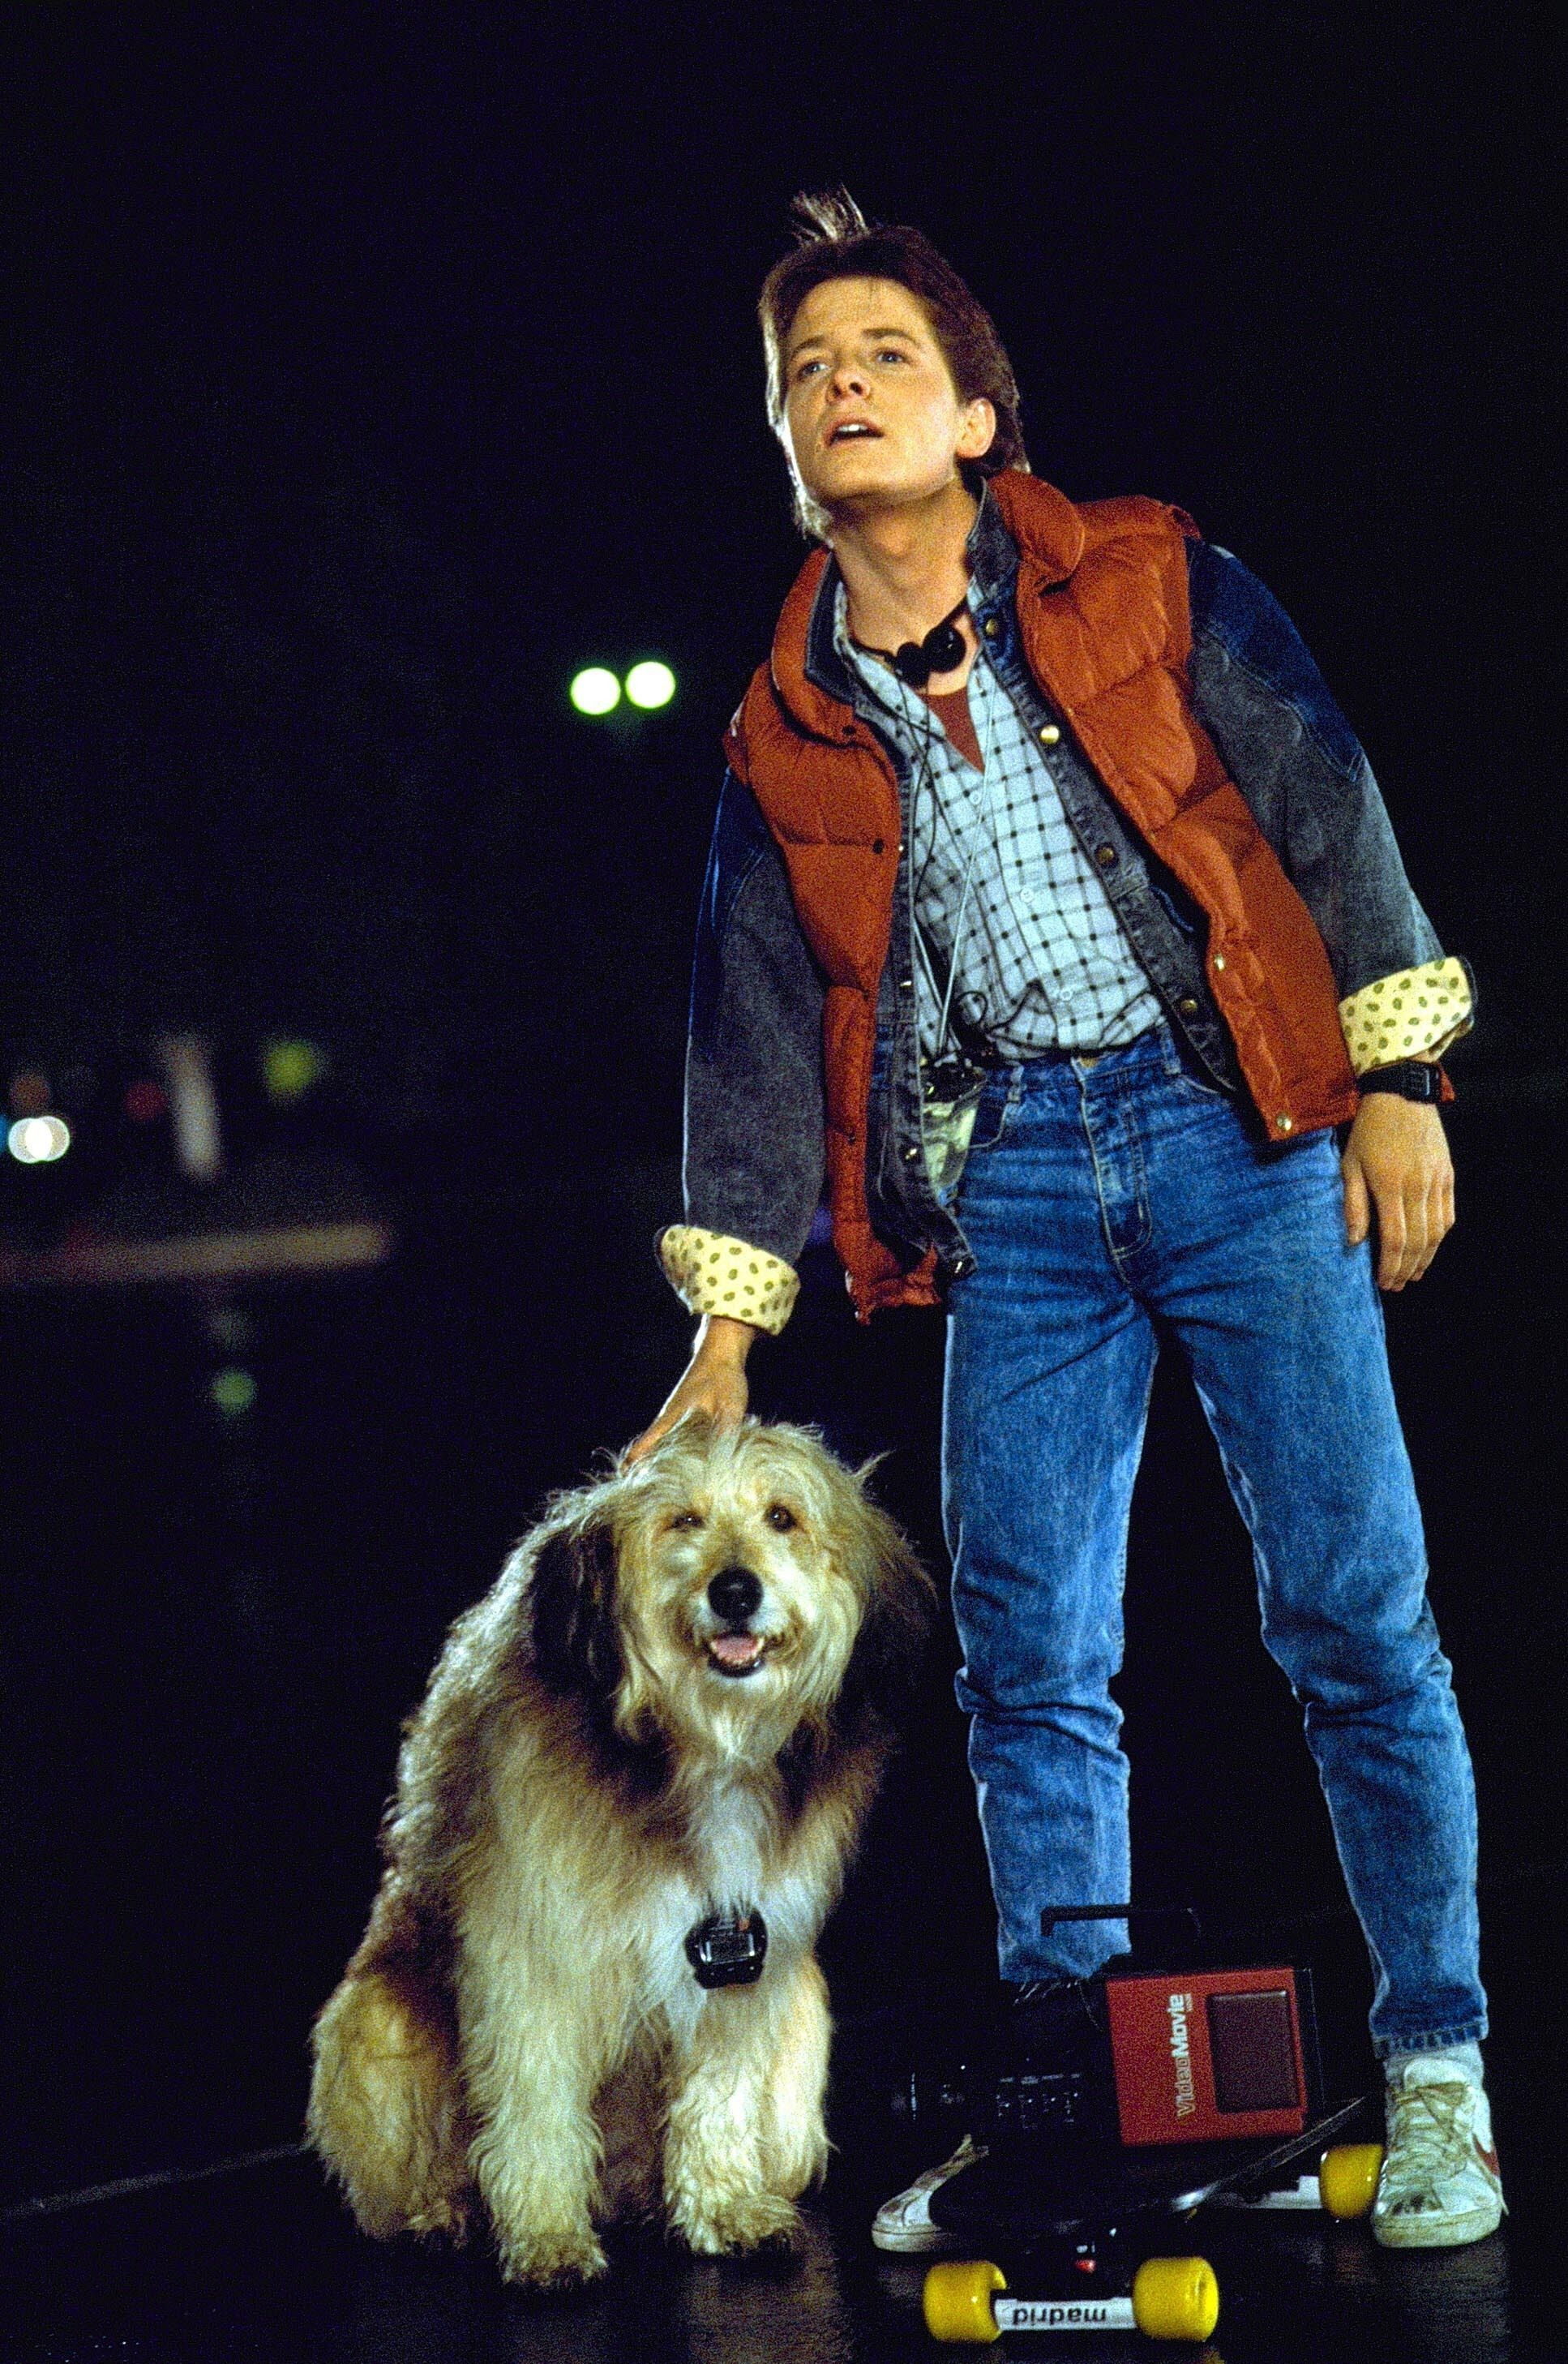 new year old look style inspiration from marty mcfly marty mcfly costume back to the. Black Bedroom Furniture Sets. Home Design Ideas